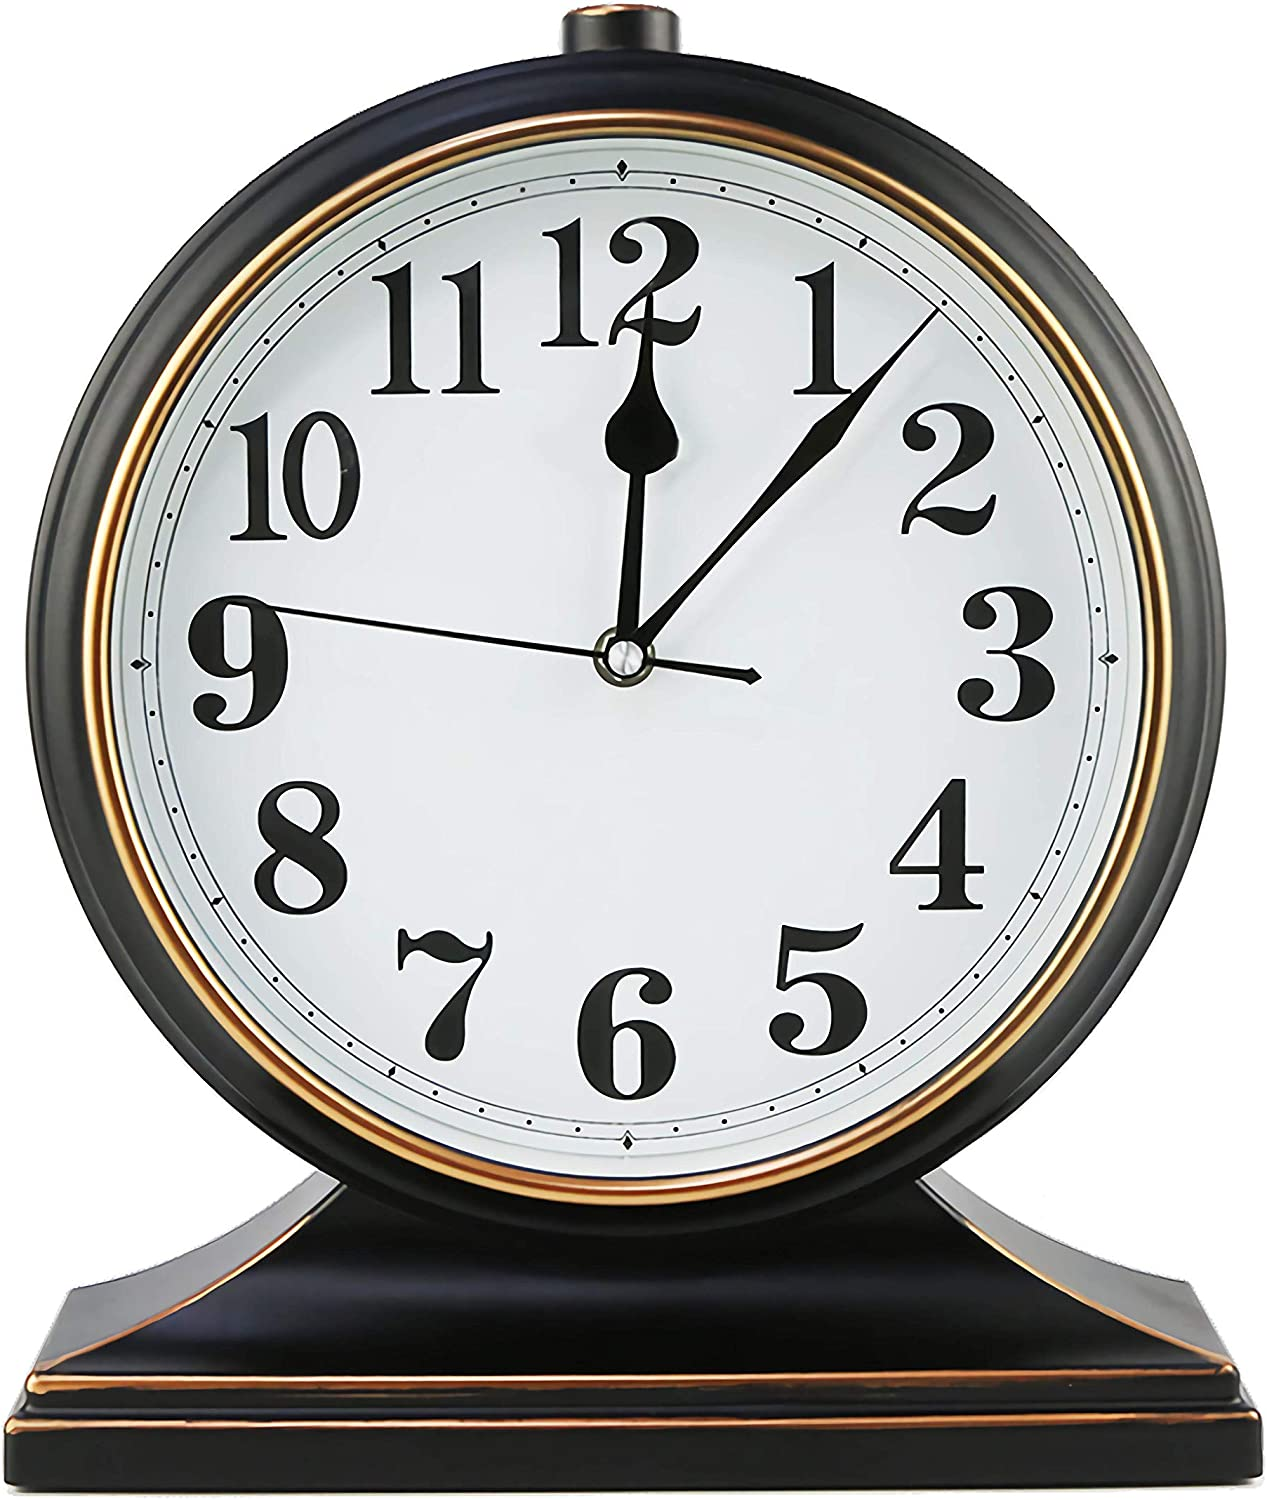 Winnie European-Style Desk Clock, Easy to Read with a 10-inch high-Definition Mirror